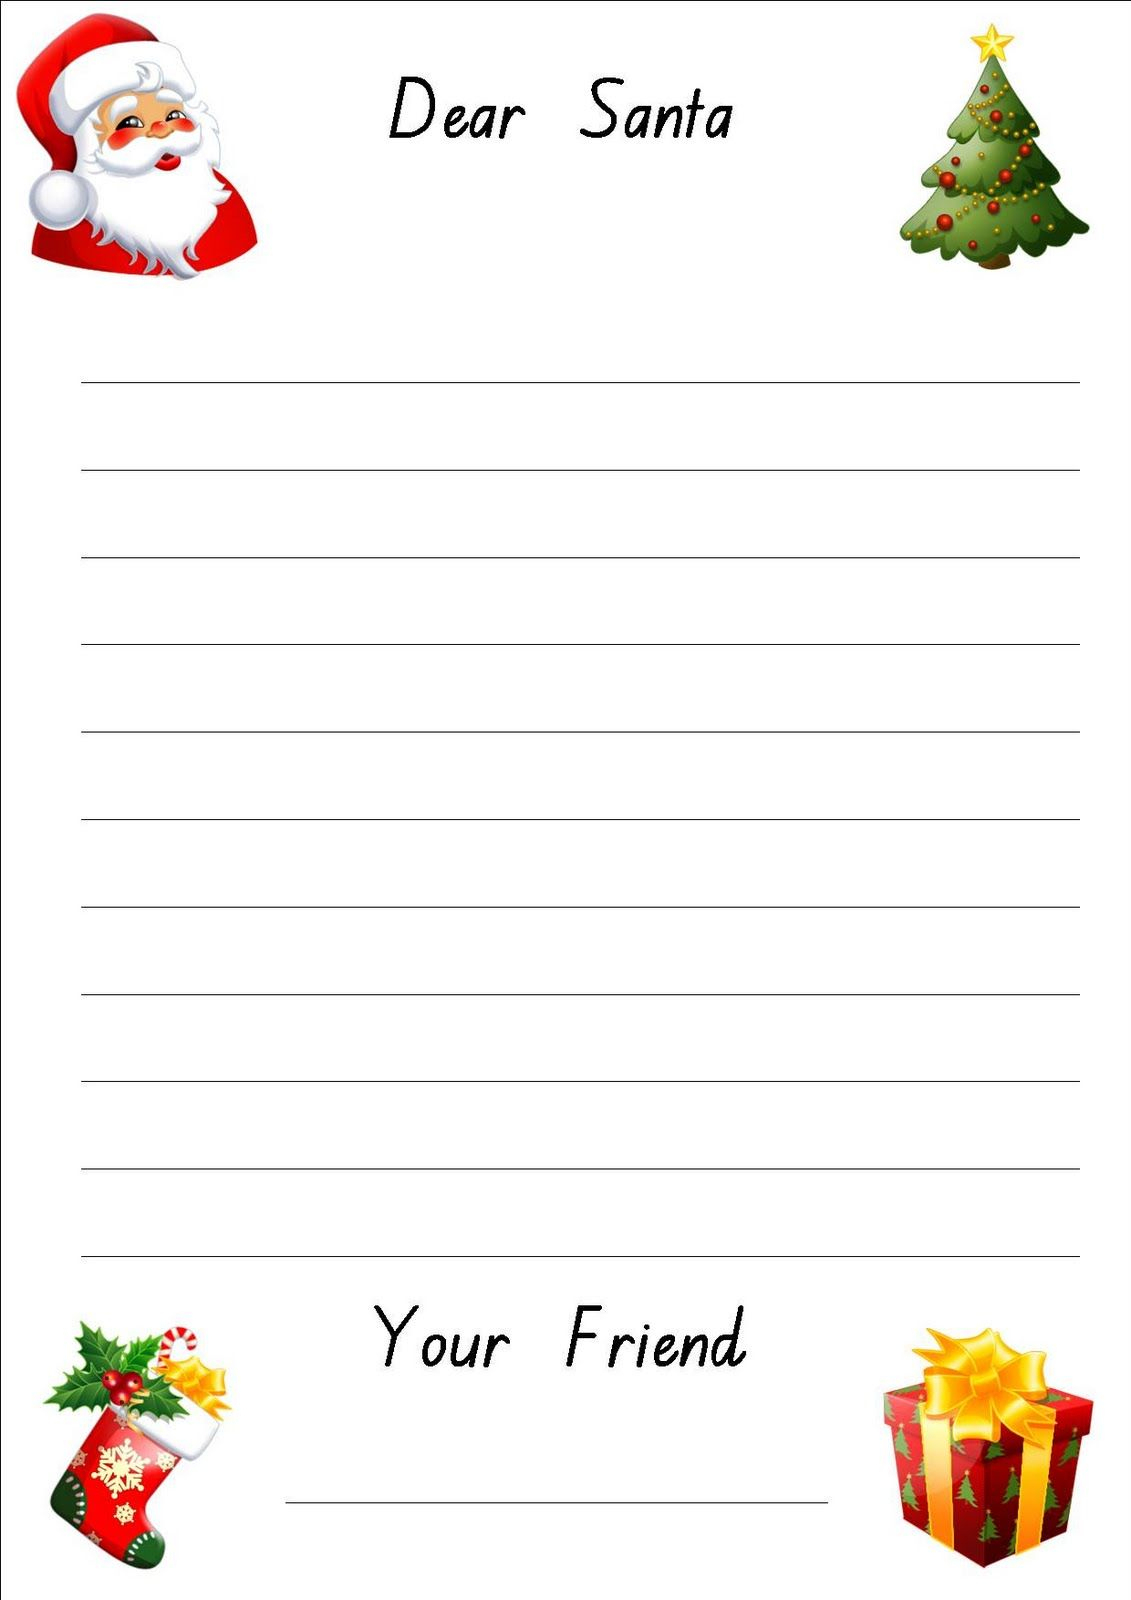 Lined Christmas Paper For Letters   Do Your Kids Write Letters To - Free Printable Christmas Writing Paper With Lines